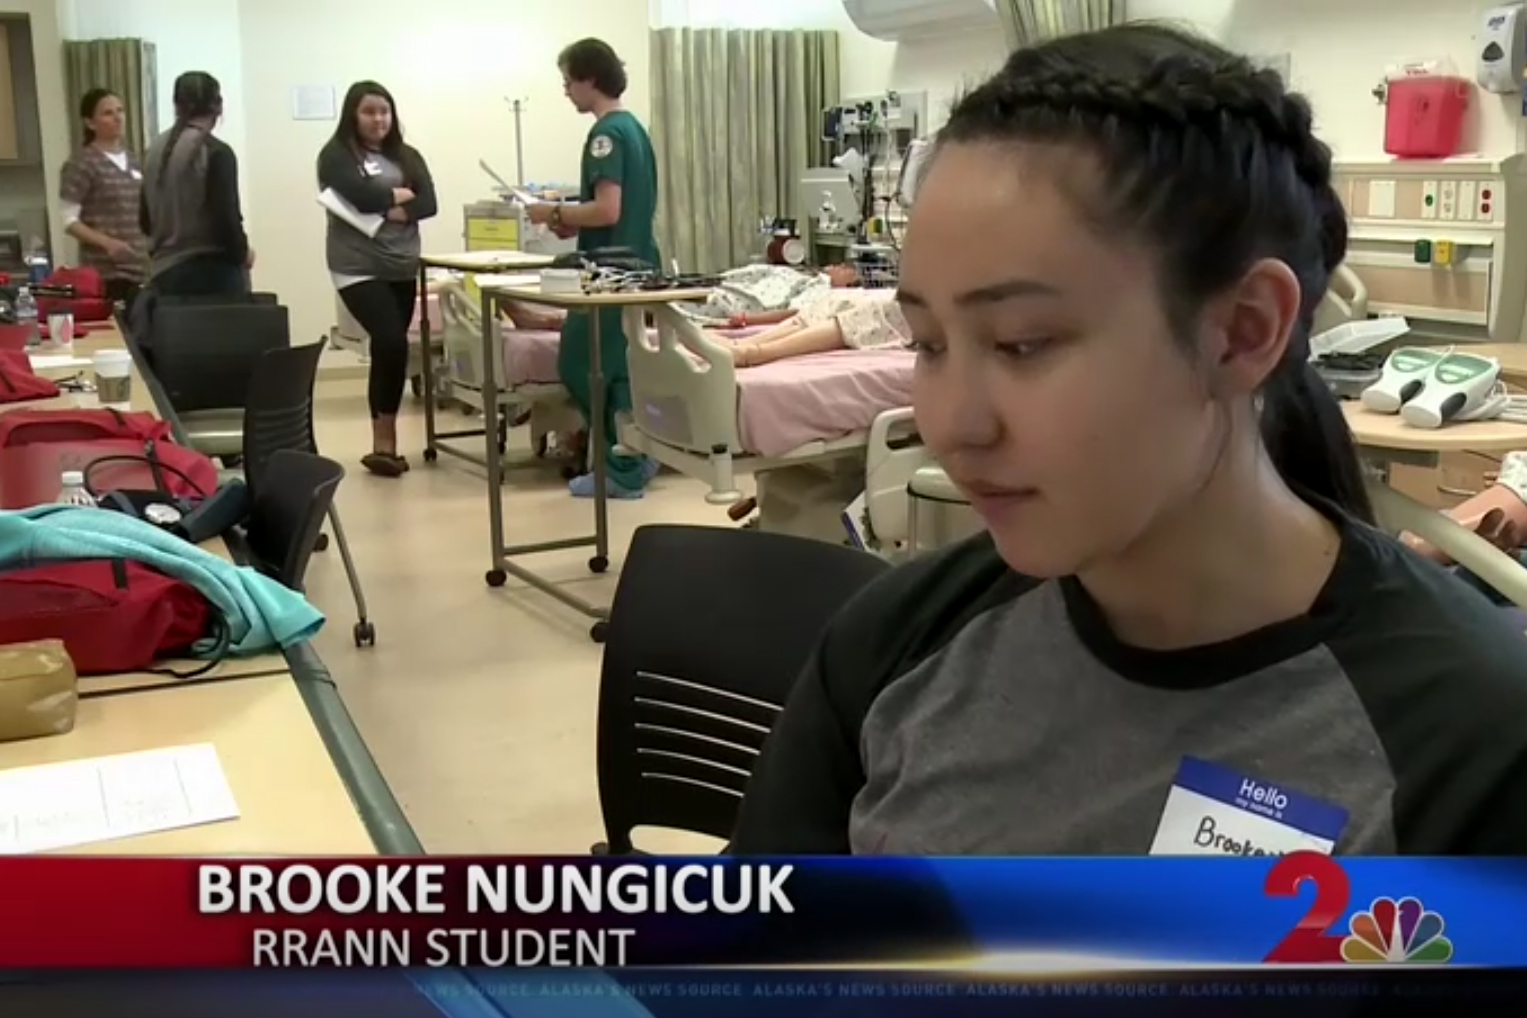 KTUU interview with RRANN student